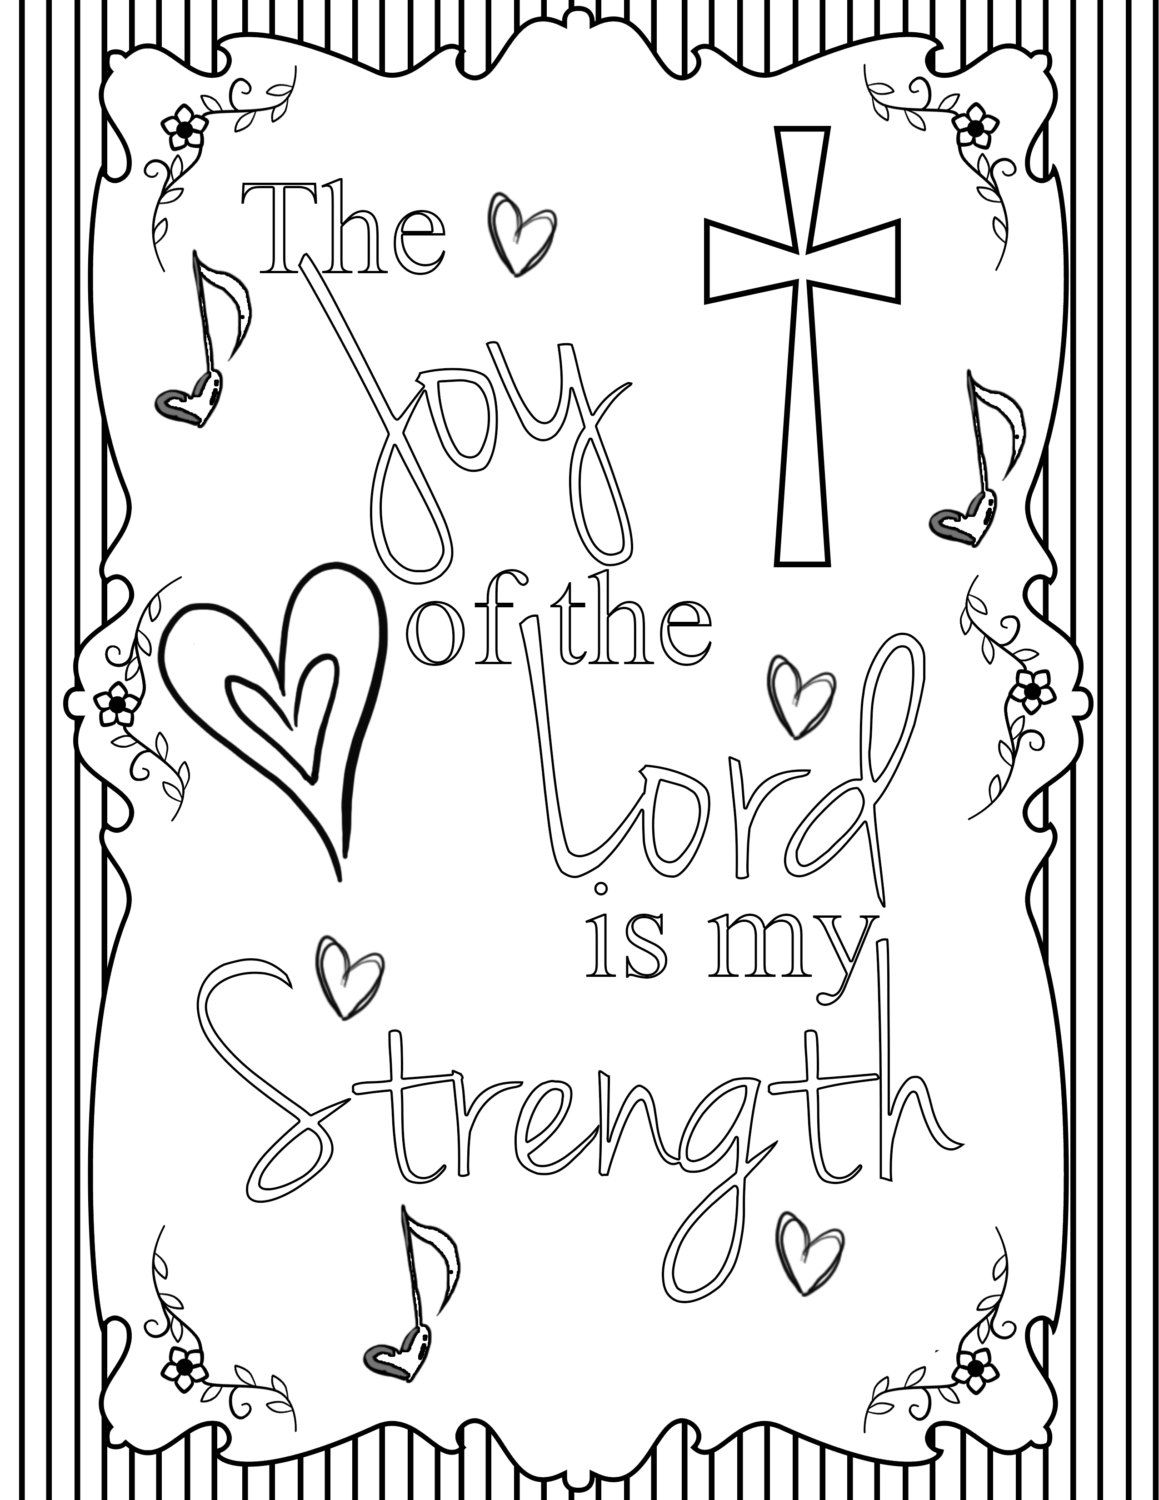 Joy of the Lord Adult Coloring Page by FIDbyCourtney on Etsy | Color ...